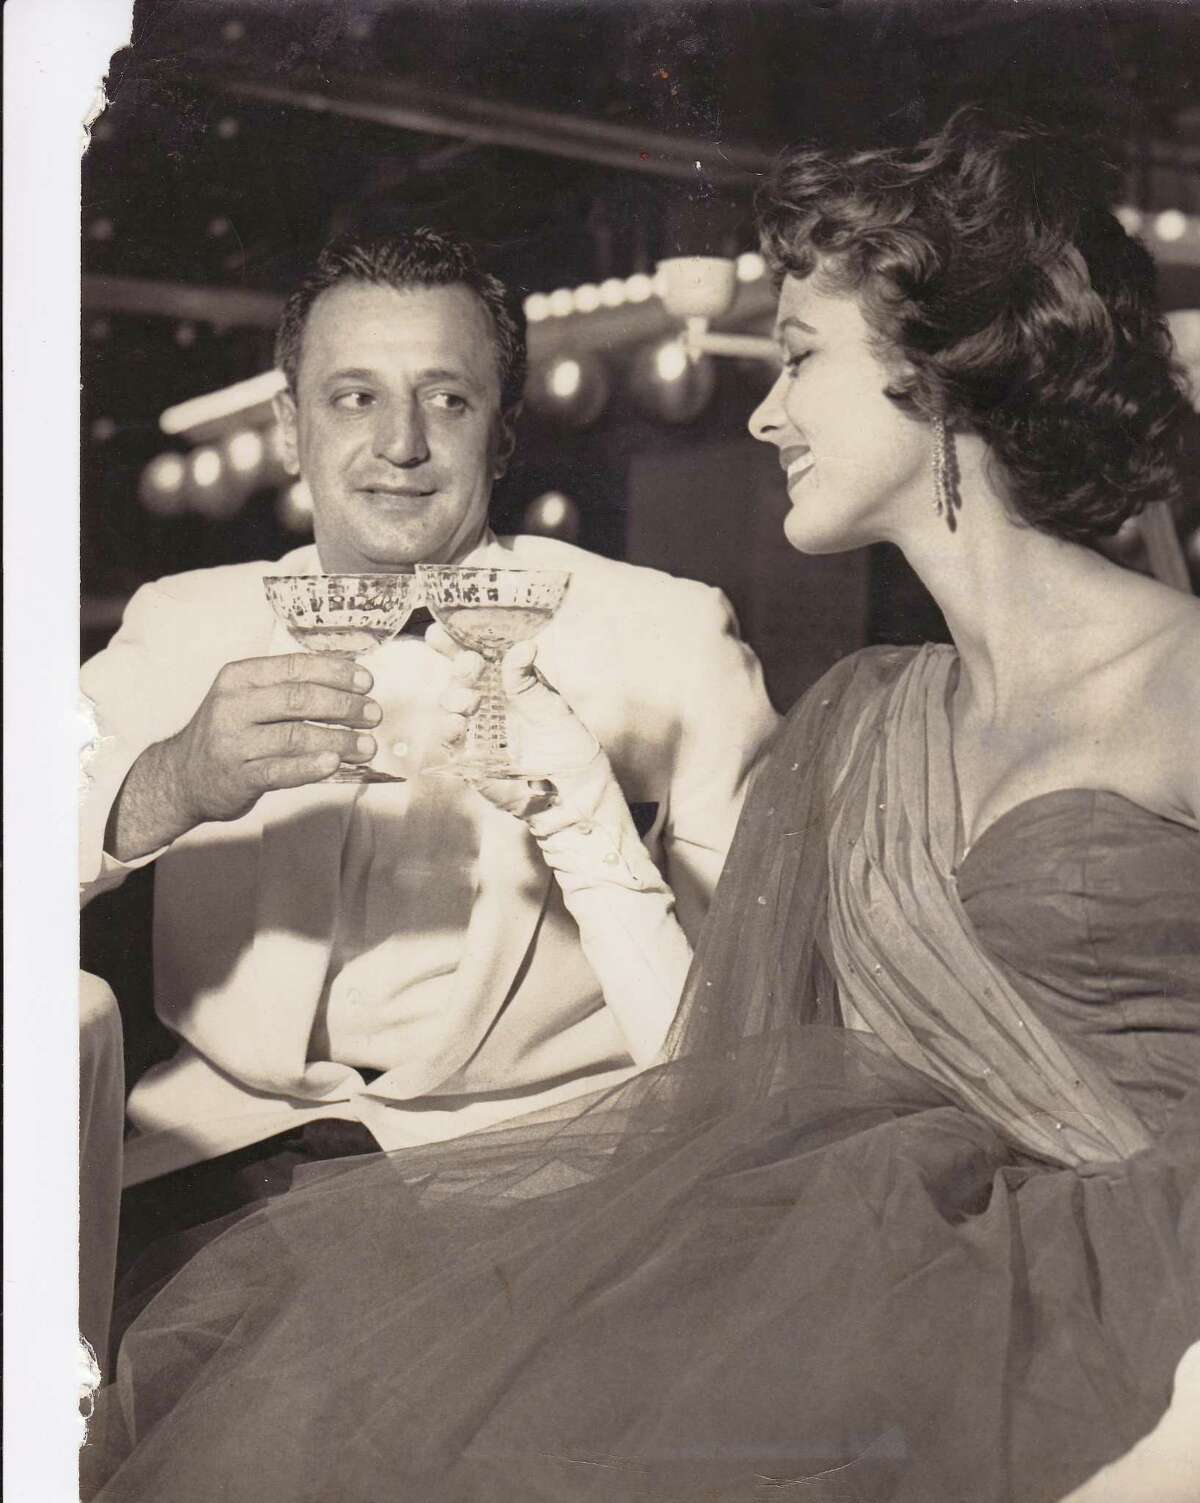 Judith Campbell Exner with New Haven's Tony Consiglio. Photo courtesy of Franz Douskey, author of